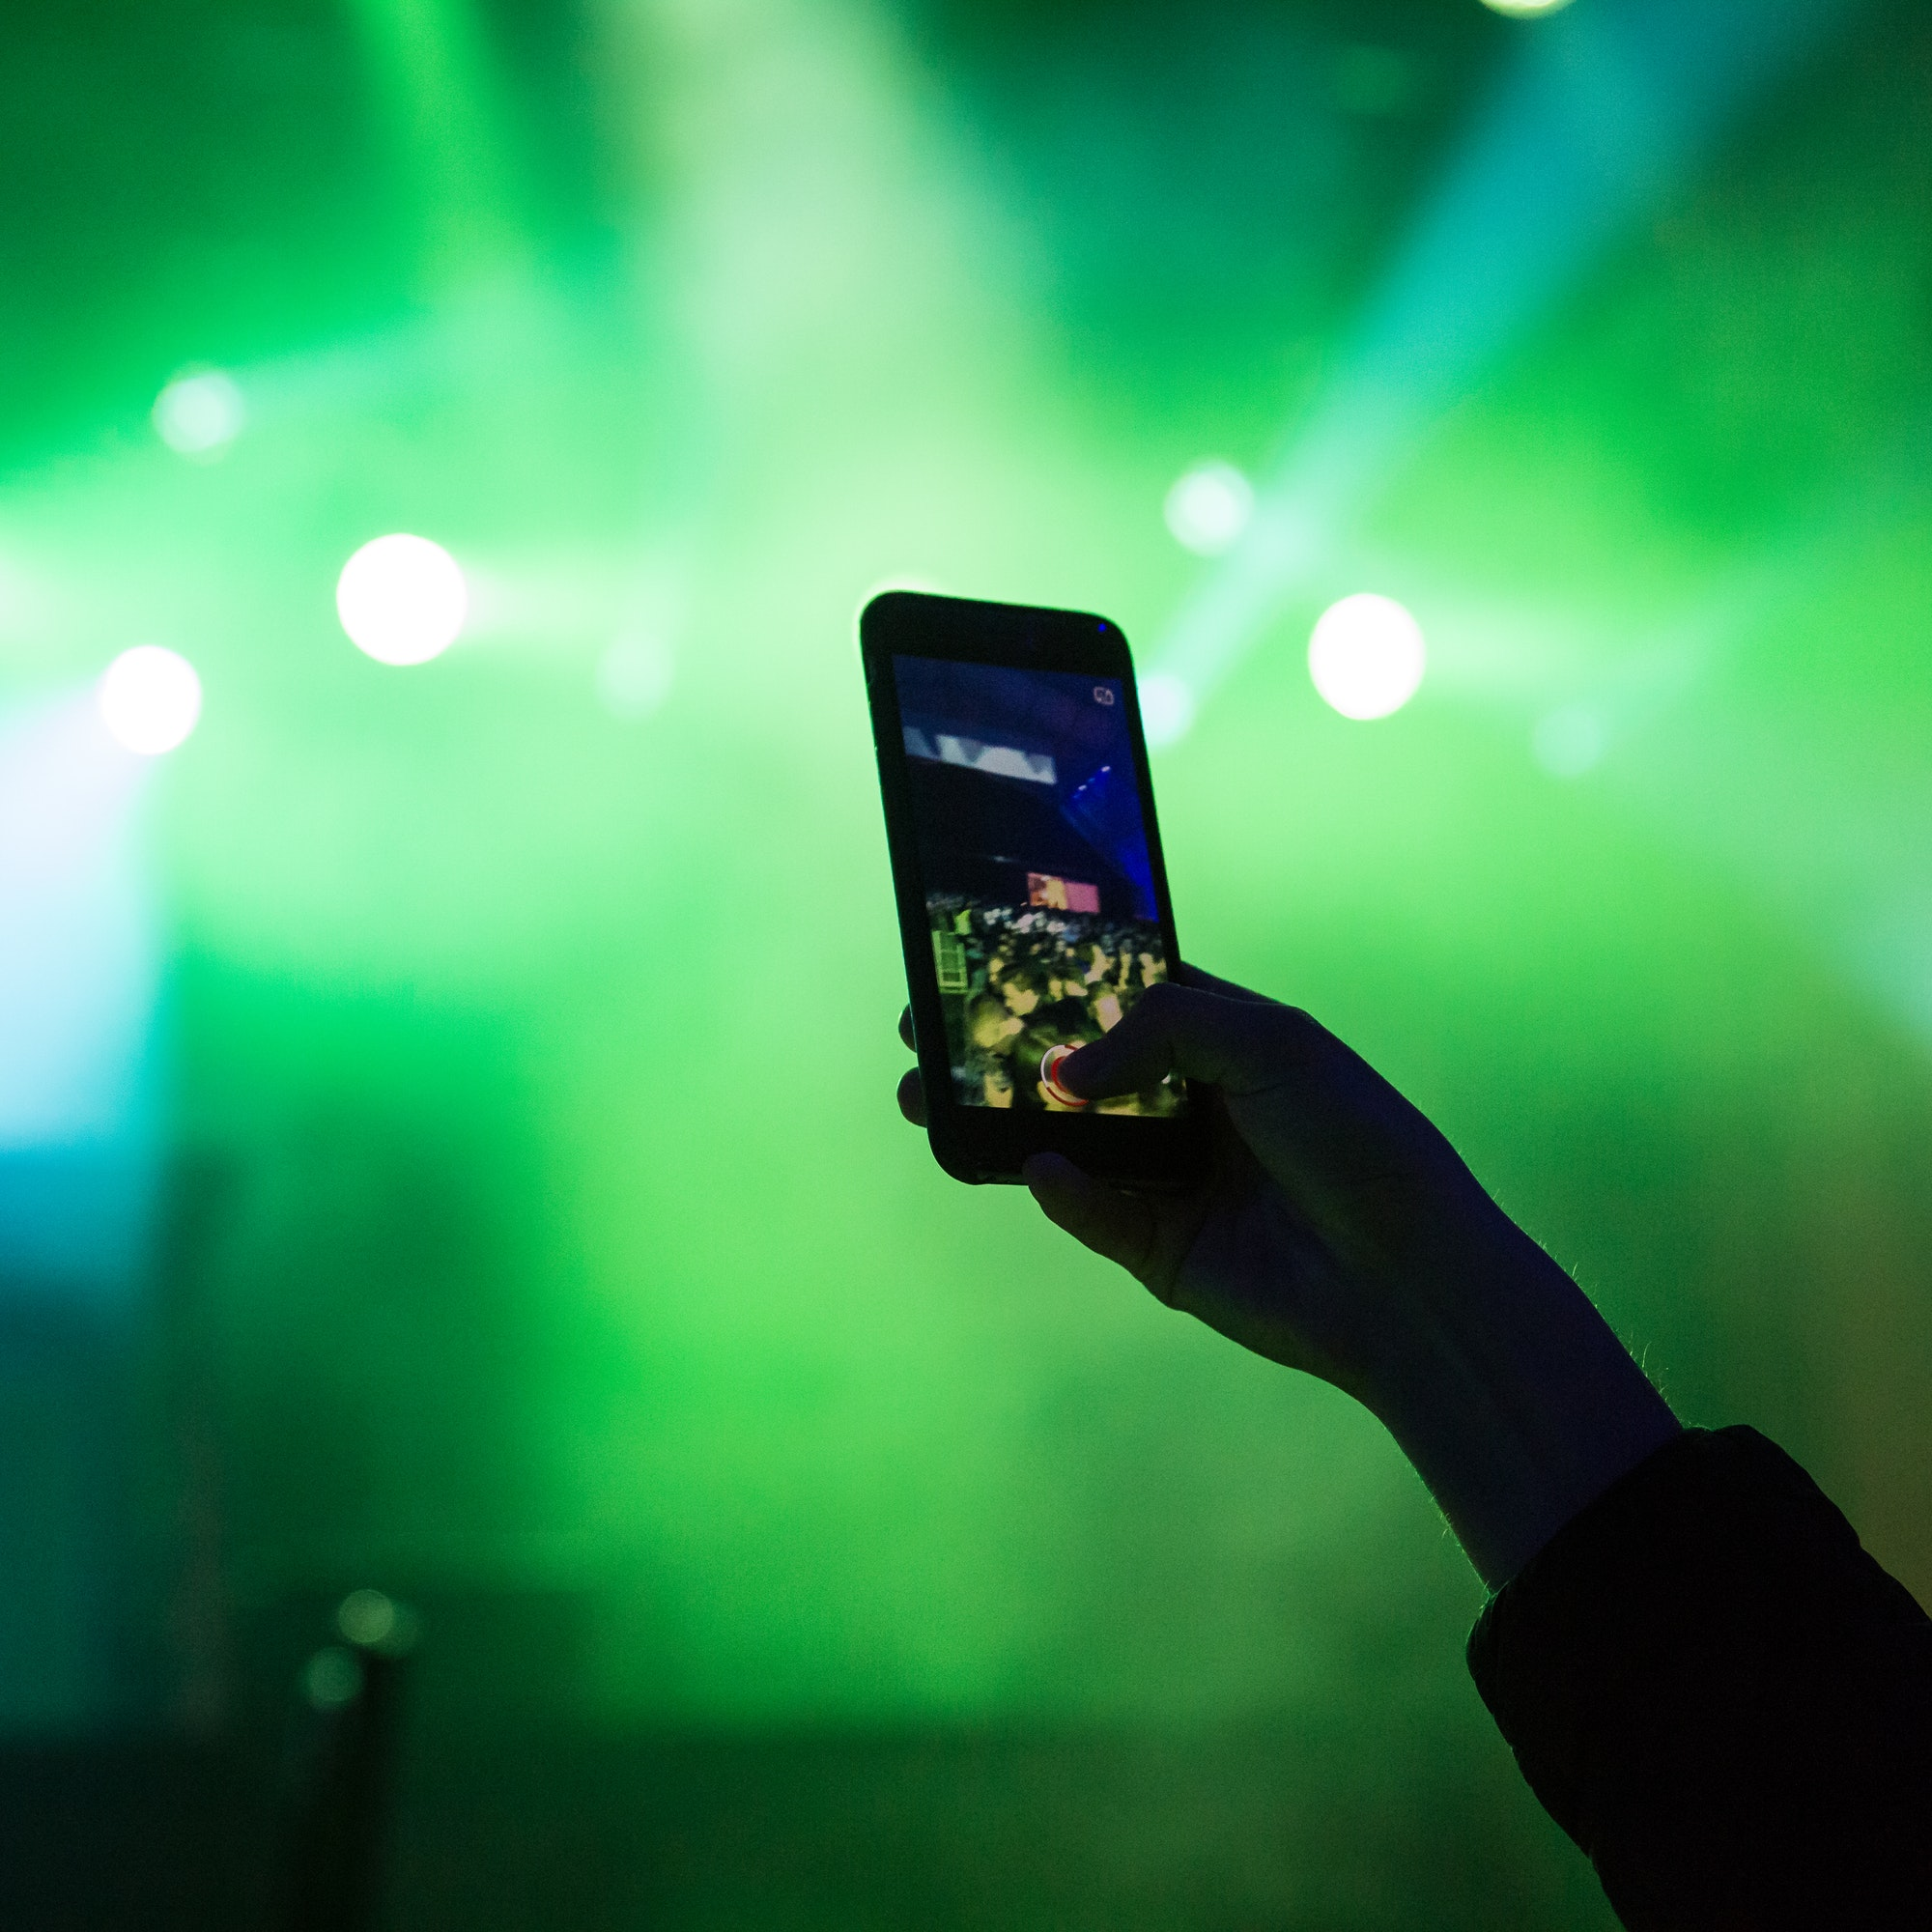 artists and fans want the phones away during shows - but is it a battle already lost?